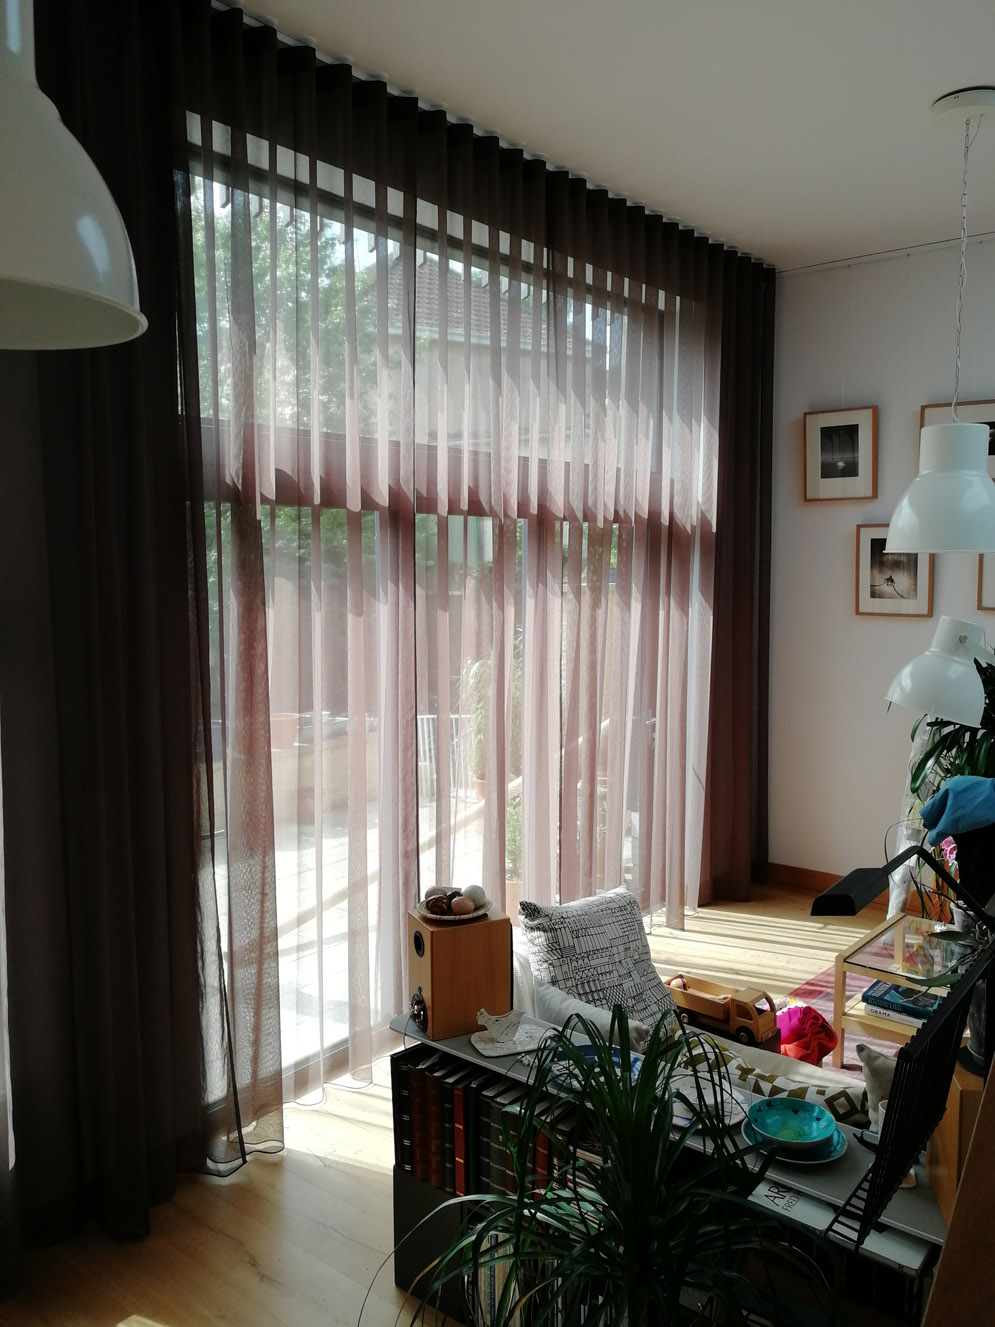 Wave 80 sheers in Villa Nova Ayre Sepia<div style='clear:both;width:100%;height:0px;'></div><span class='cat'>Previous Projects, Curtains Pelmets</span>